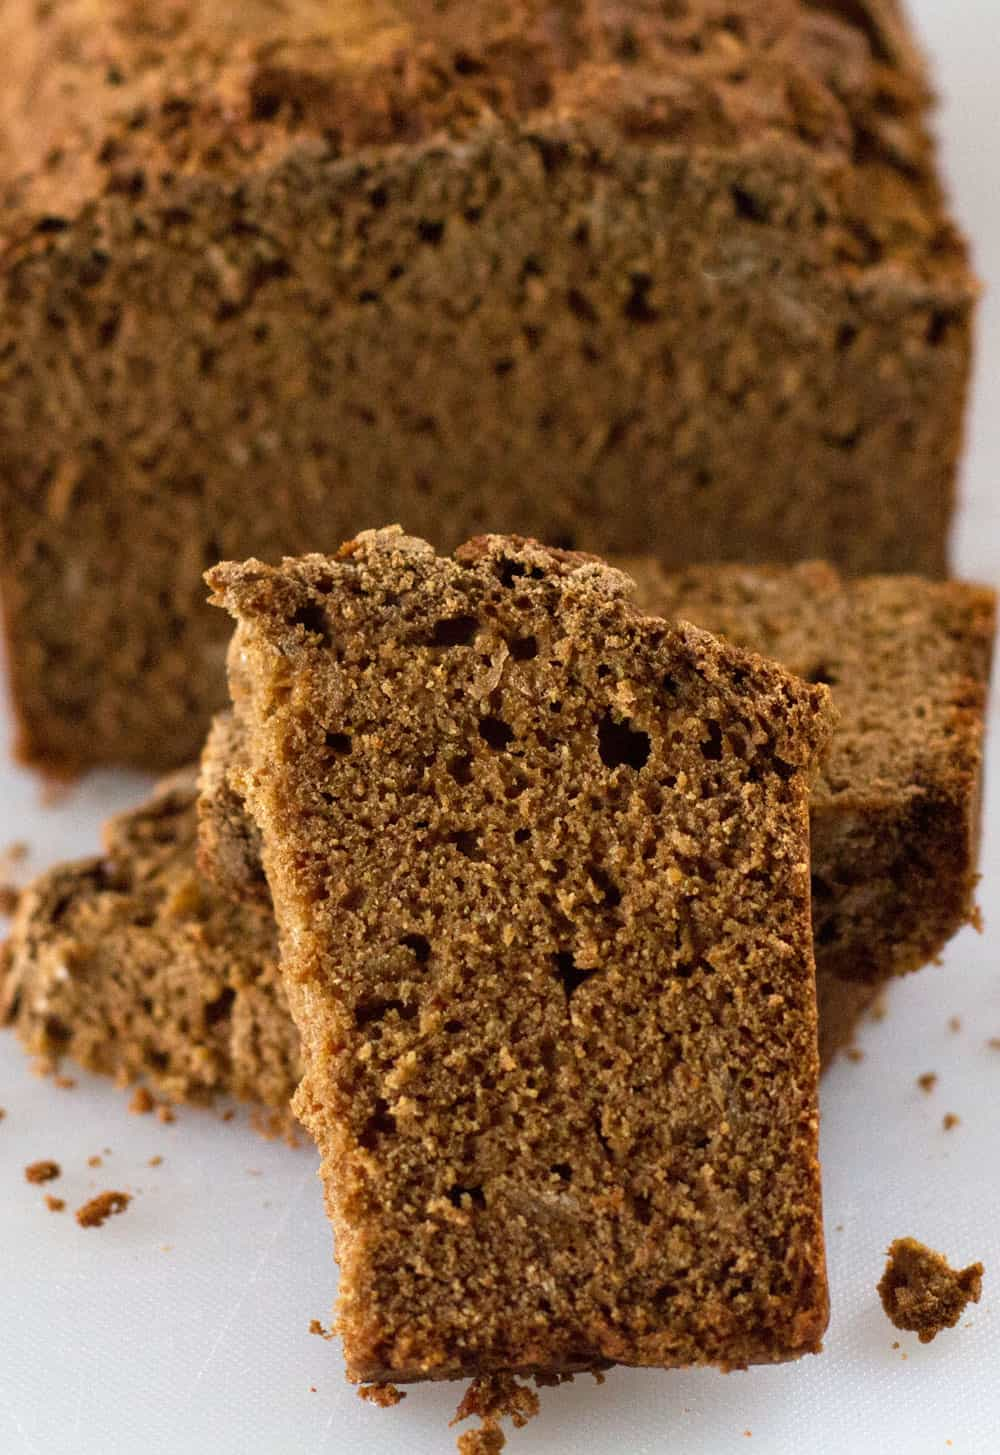 A slice of Irish brown bread with the loaf in the background